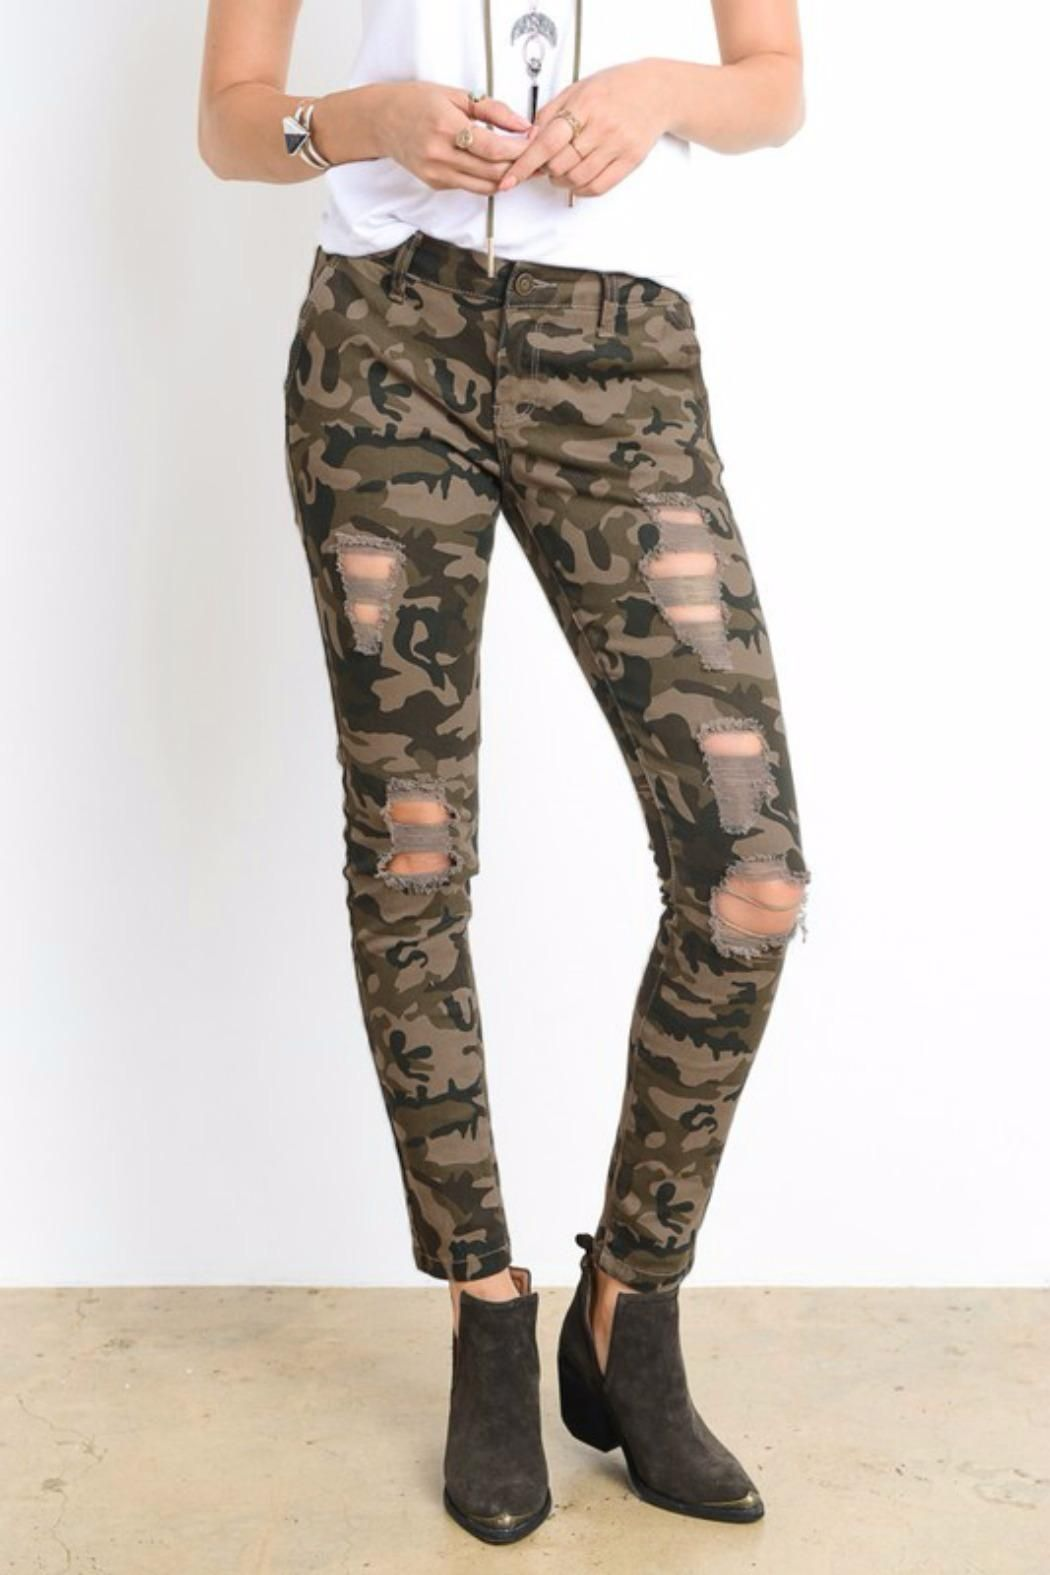 14b23ea9a5a Distressed camo print Jeggings. They feature a button and zipper like